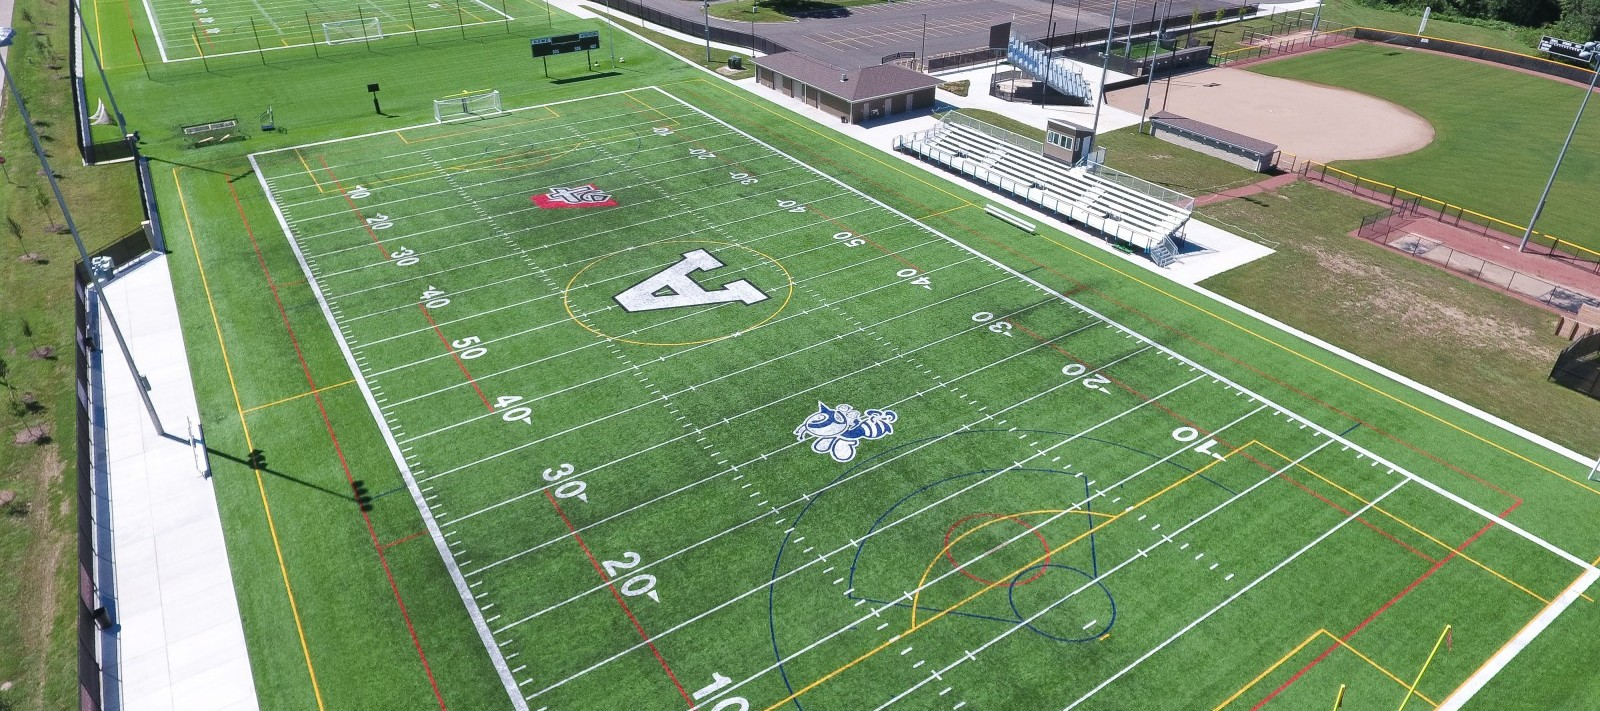 Aerial view of Assumption football field